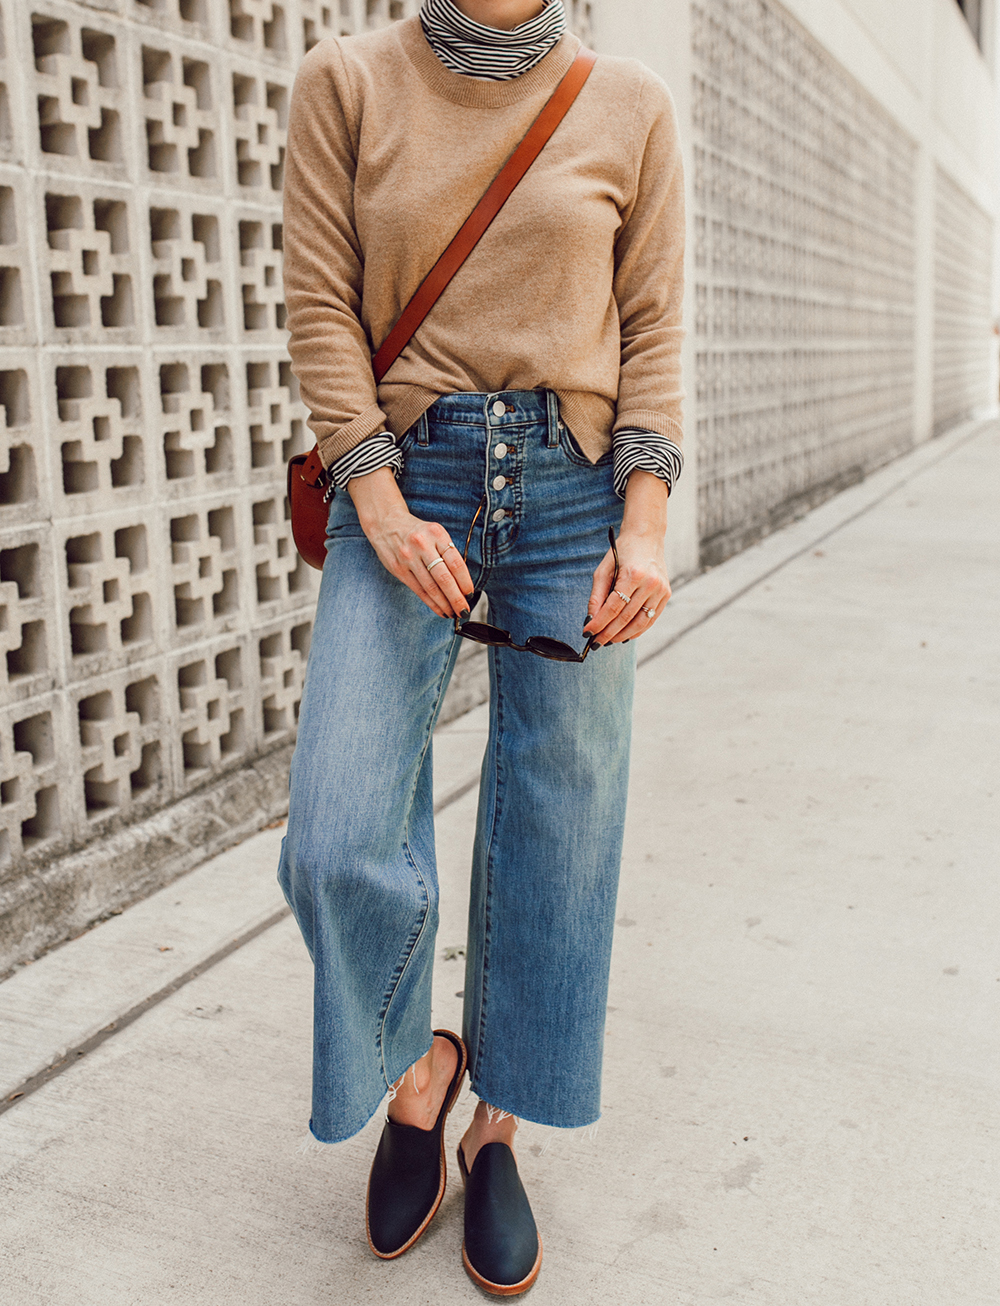 livvyland-blog-olivia-watson-austin-texas-lifestyle-fashion-blogger-fortress-of-inca-michelle-mules-3